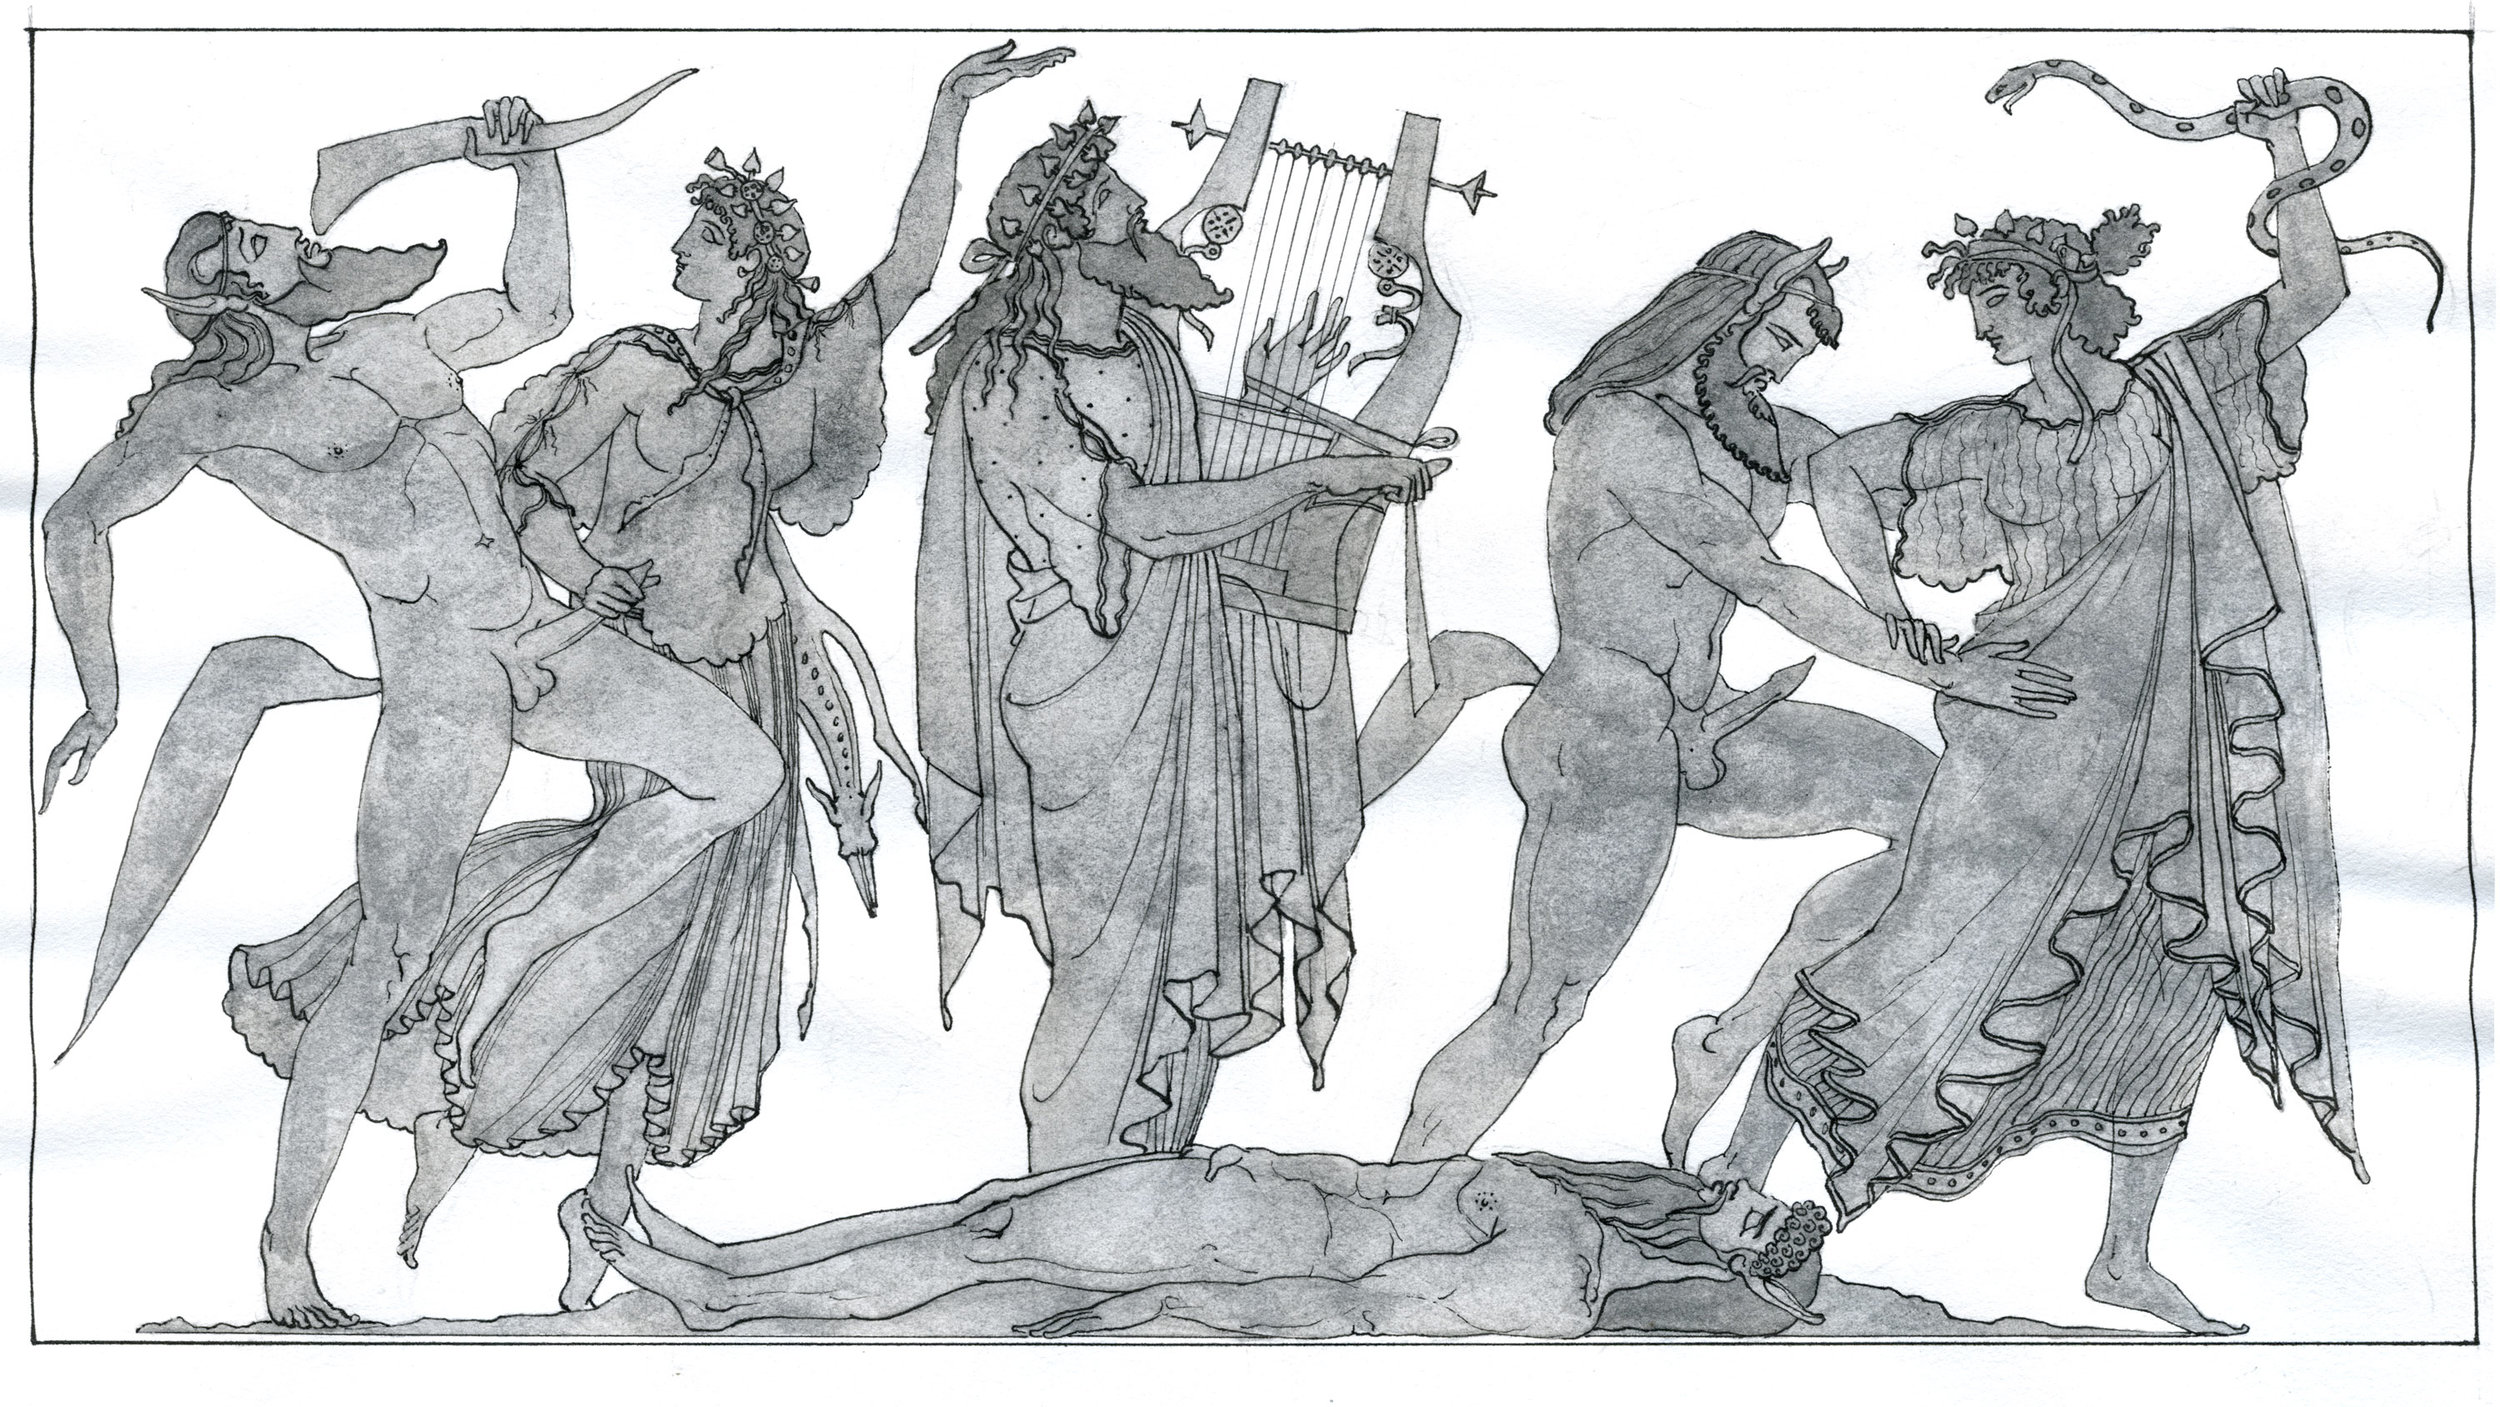 """Dionysos with Satyrs and Maenads  2017, Ink on paper, 10 1/8"""" x 14 1/8"""" © Leonard Porter MMXVII"""